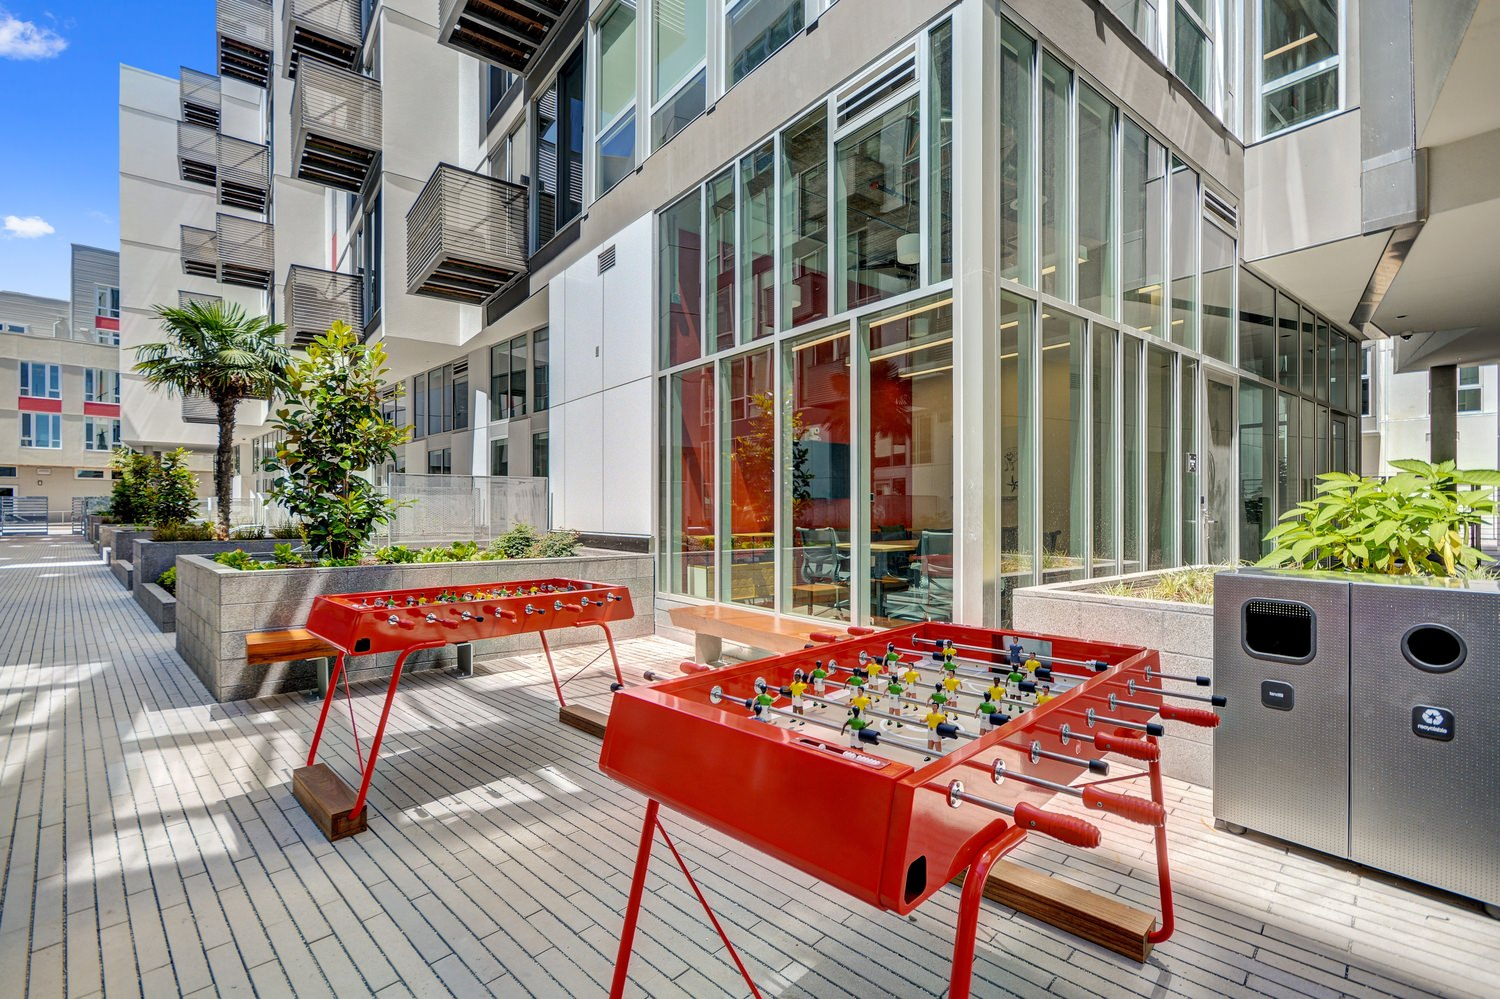 A walkway that is line with game tables and plants that is next to a large building with windows.